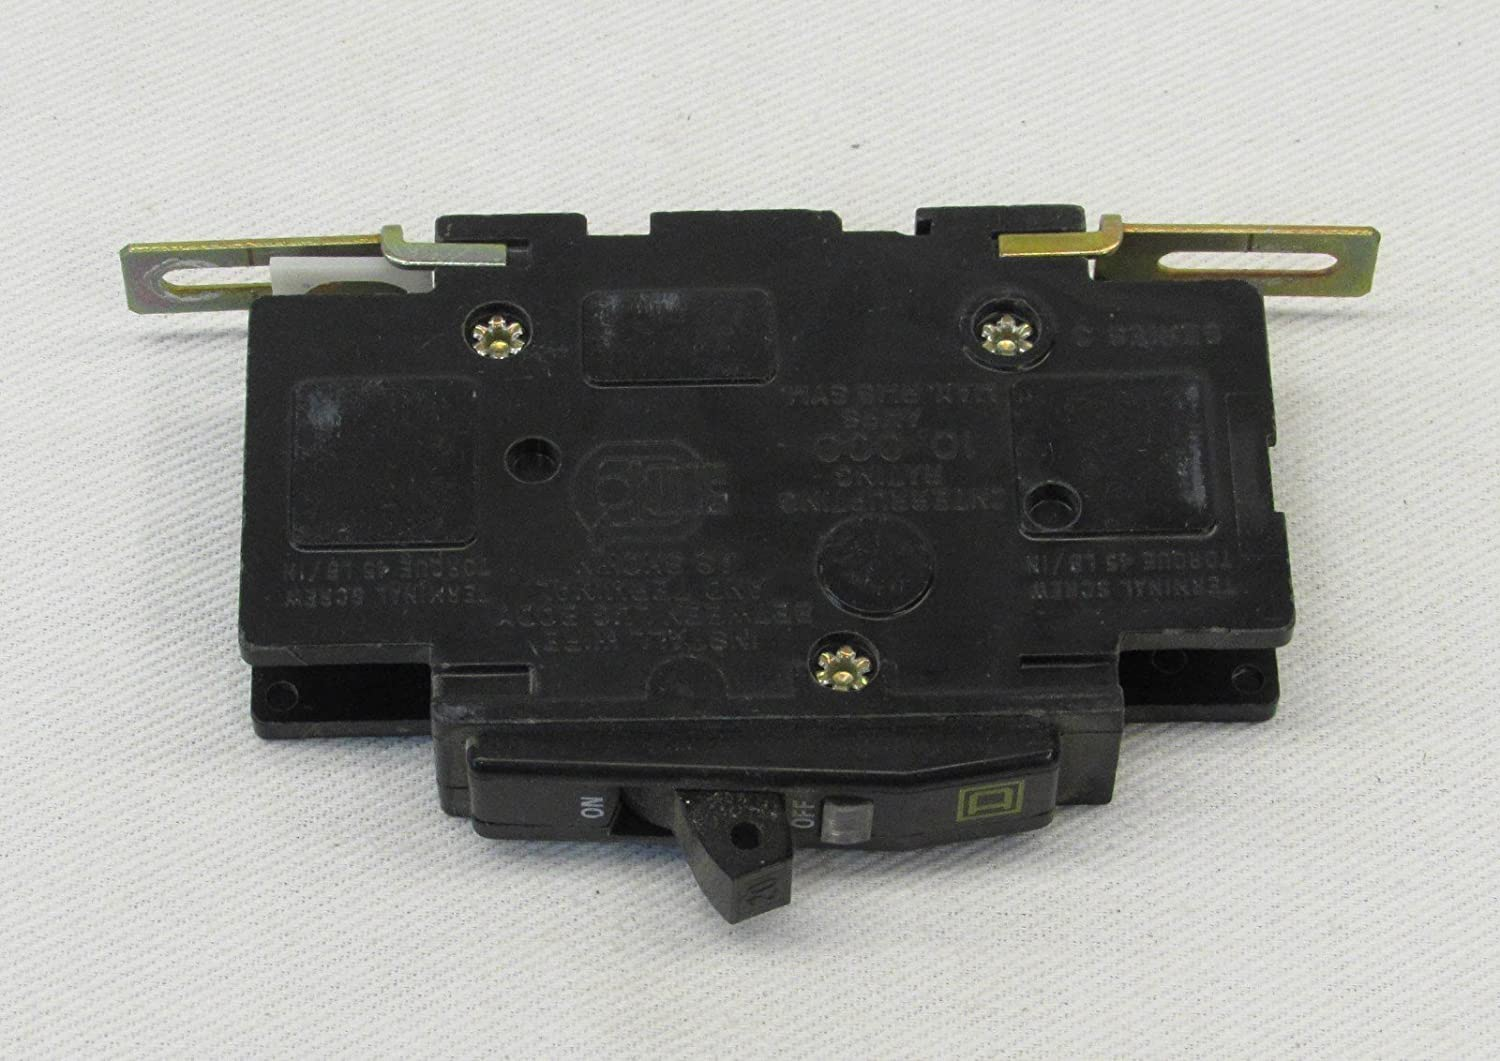 Square D Circuit Breaker 20 Amp 1 Pole Qou120 Thermal Magnetic Breakers Automotive Panel Mount 15